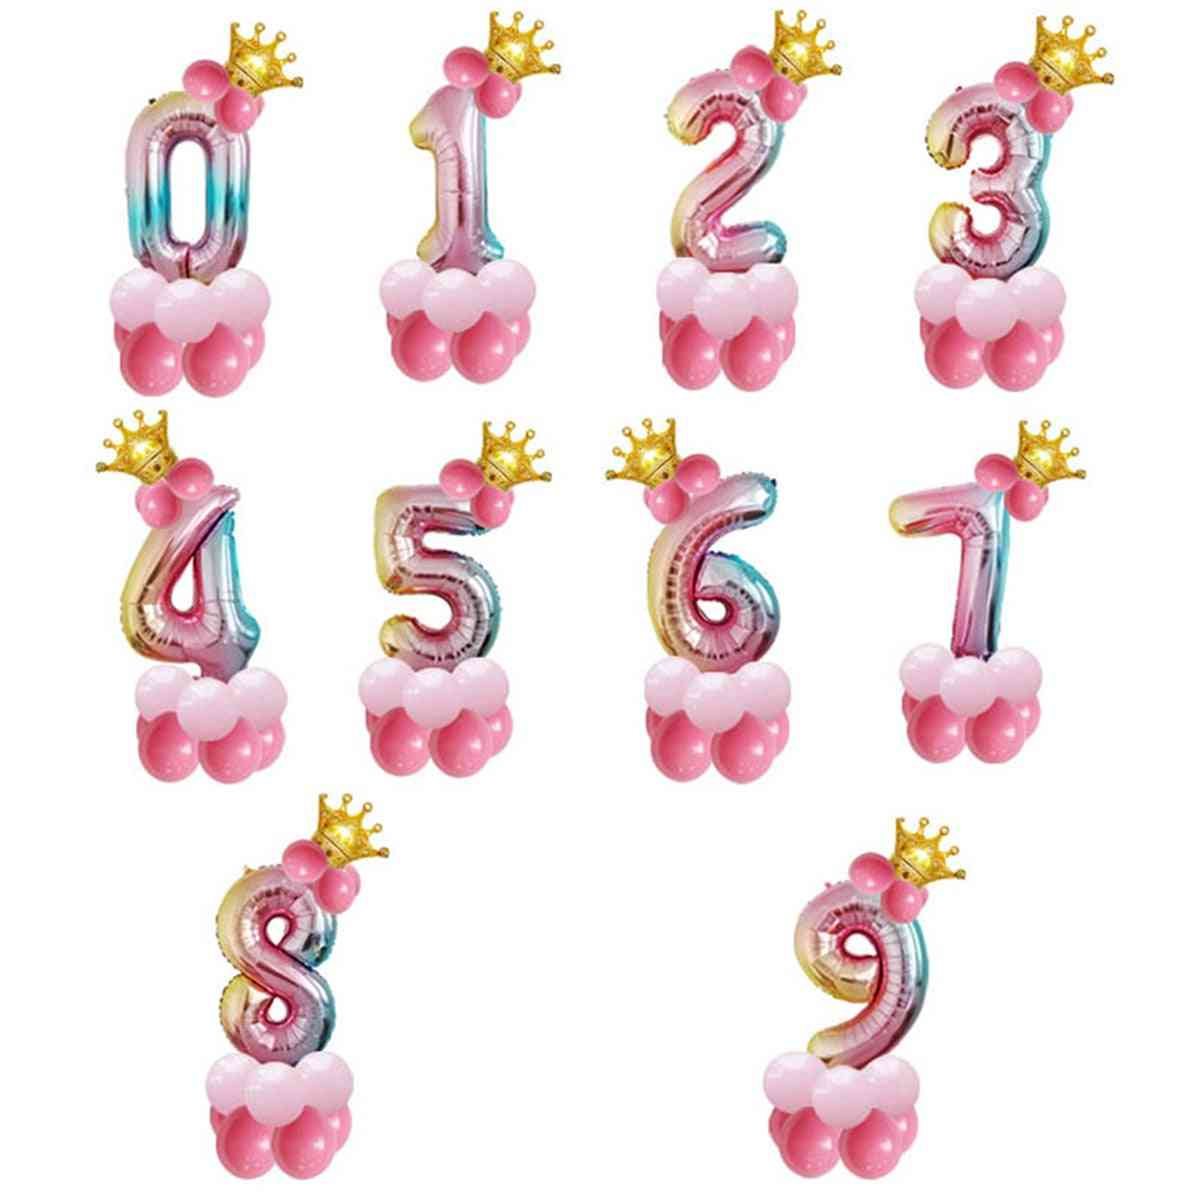 Foil Birthday Balloons, Number Balloon, Happy Birthday Party Decorations.